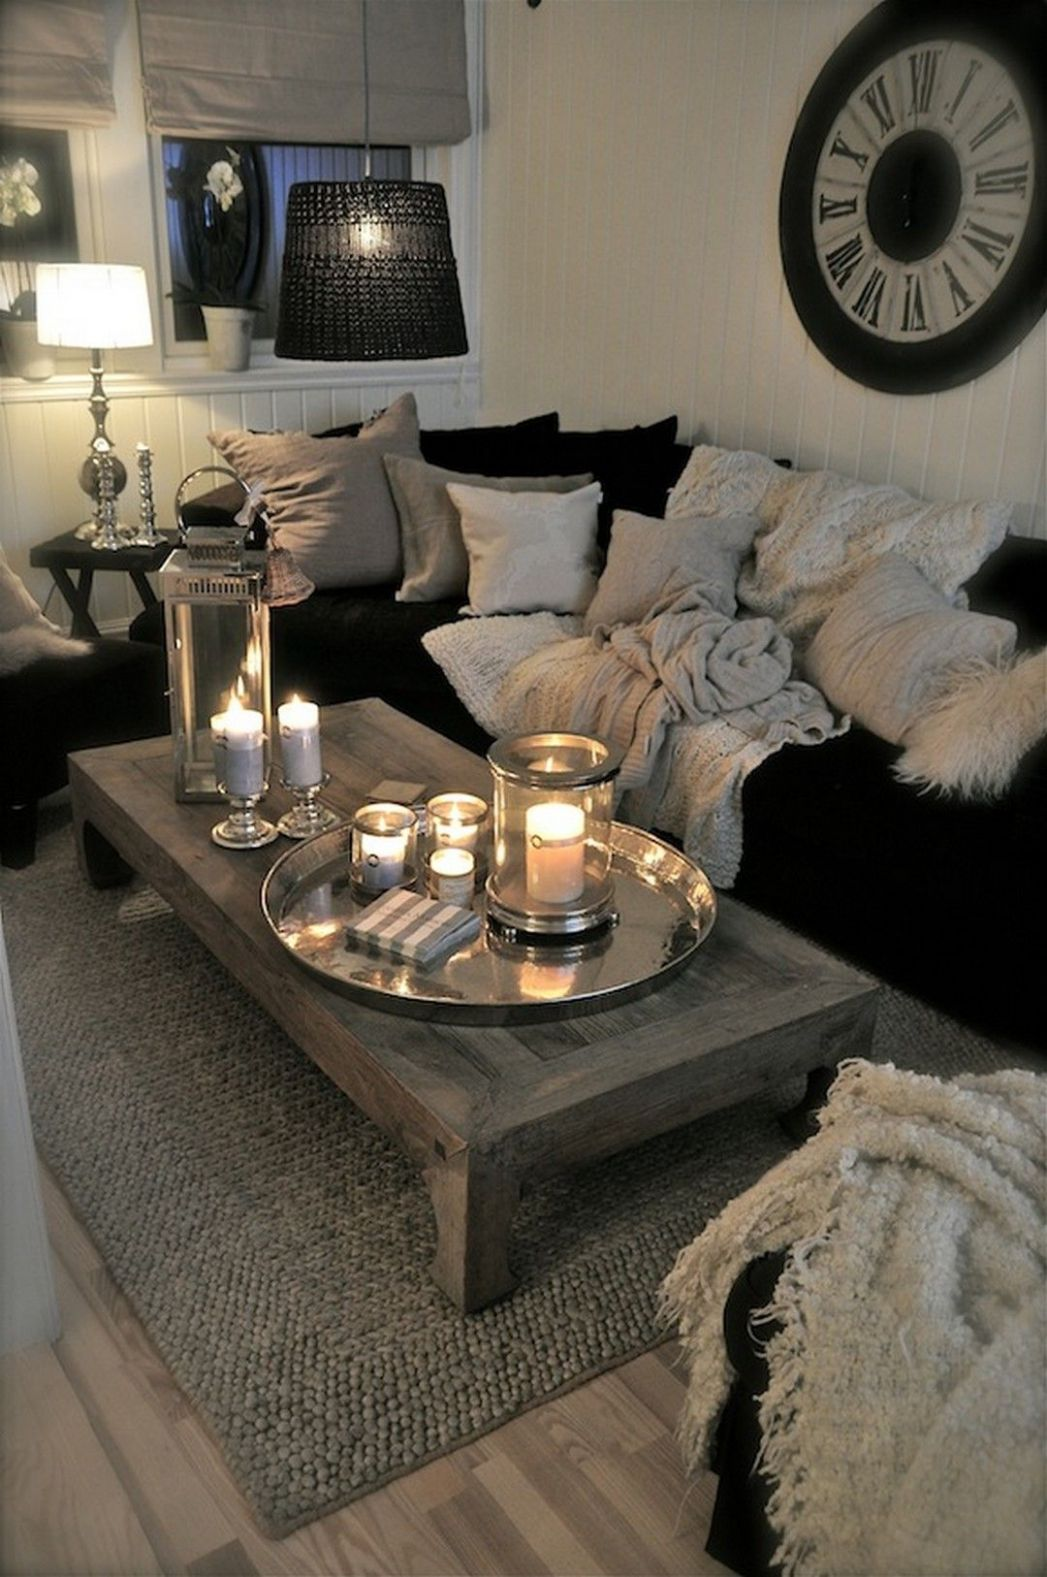 Awesome Apartment Decor 10 Easy D I Y First Apartement Decorating ..